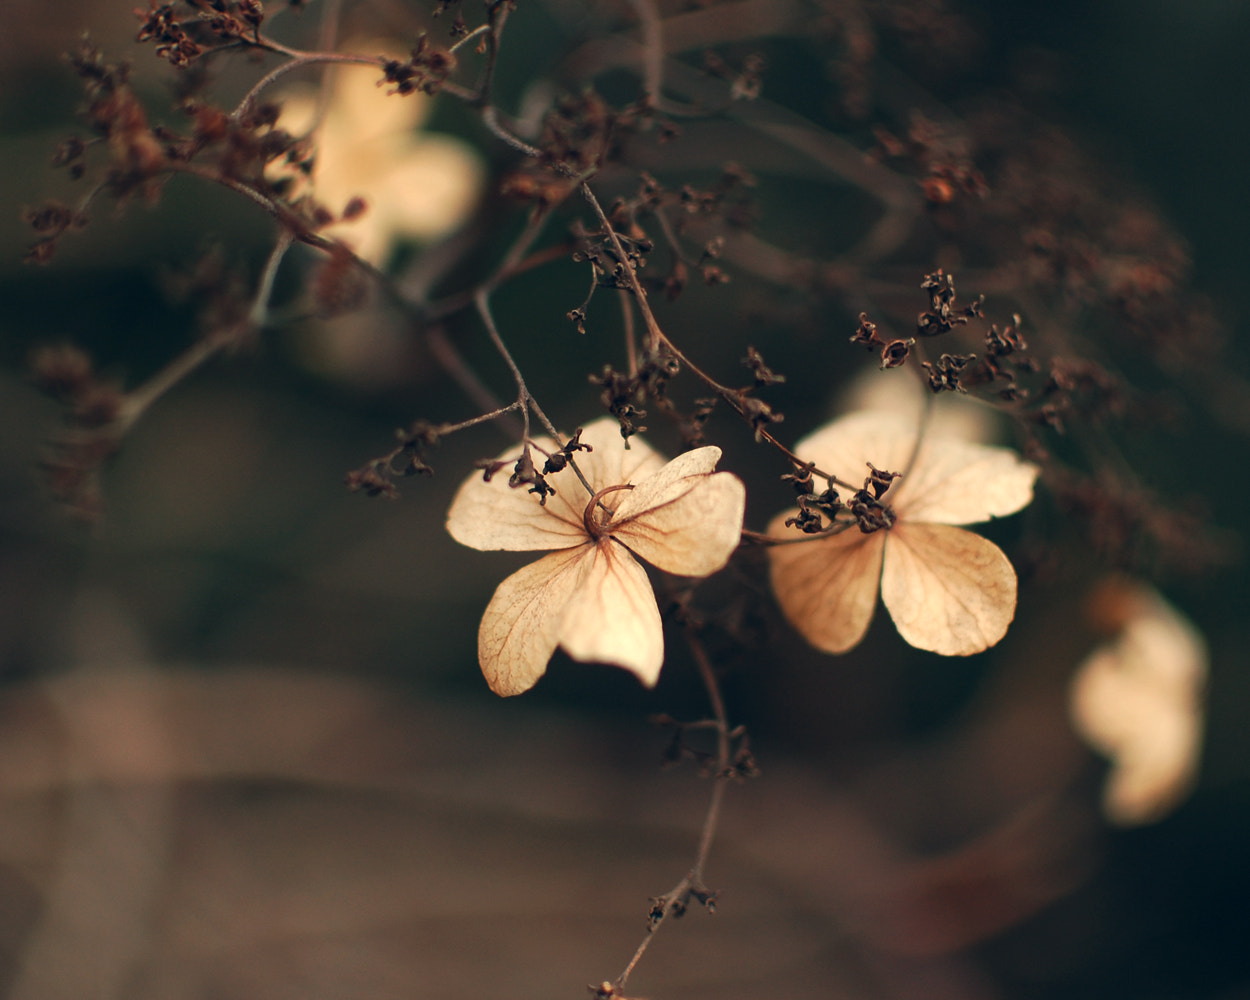 Photograph Delicate by Allana Mayer on 500px